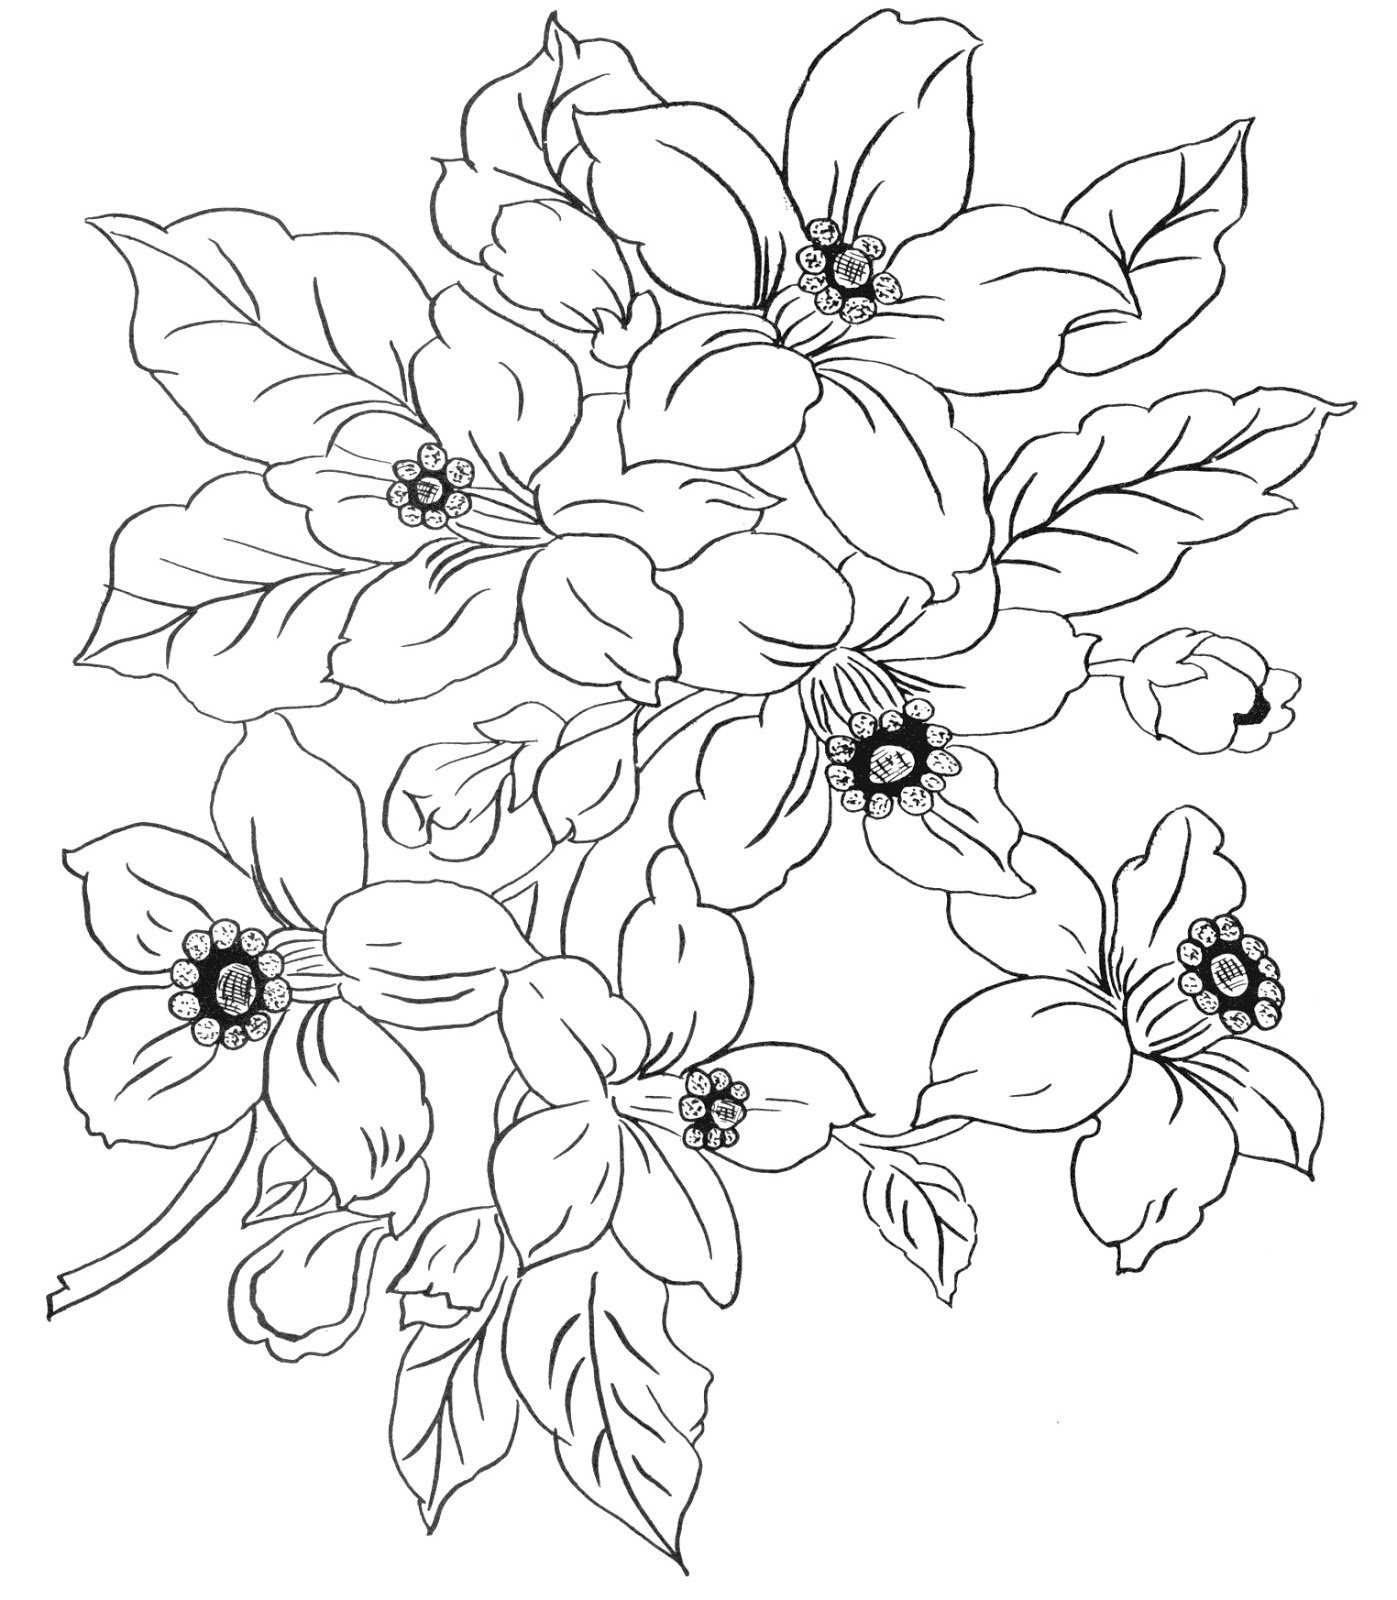 Line Drawing Flowers Blossom : Digital two for tuesday more flower designs